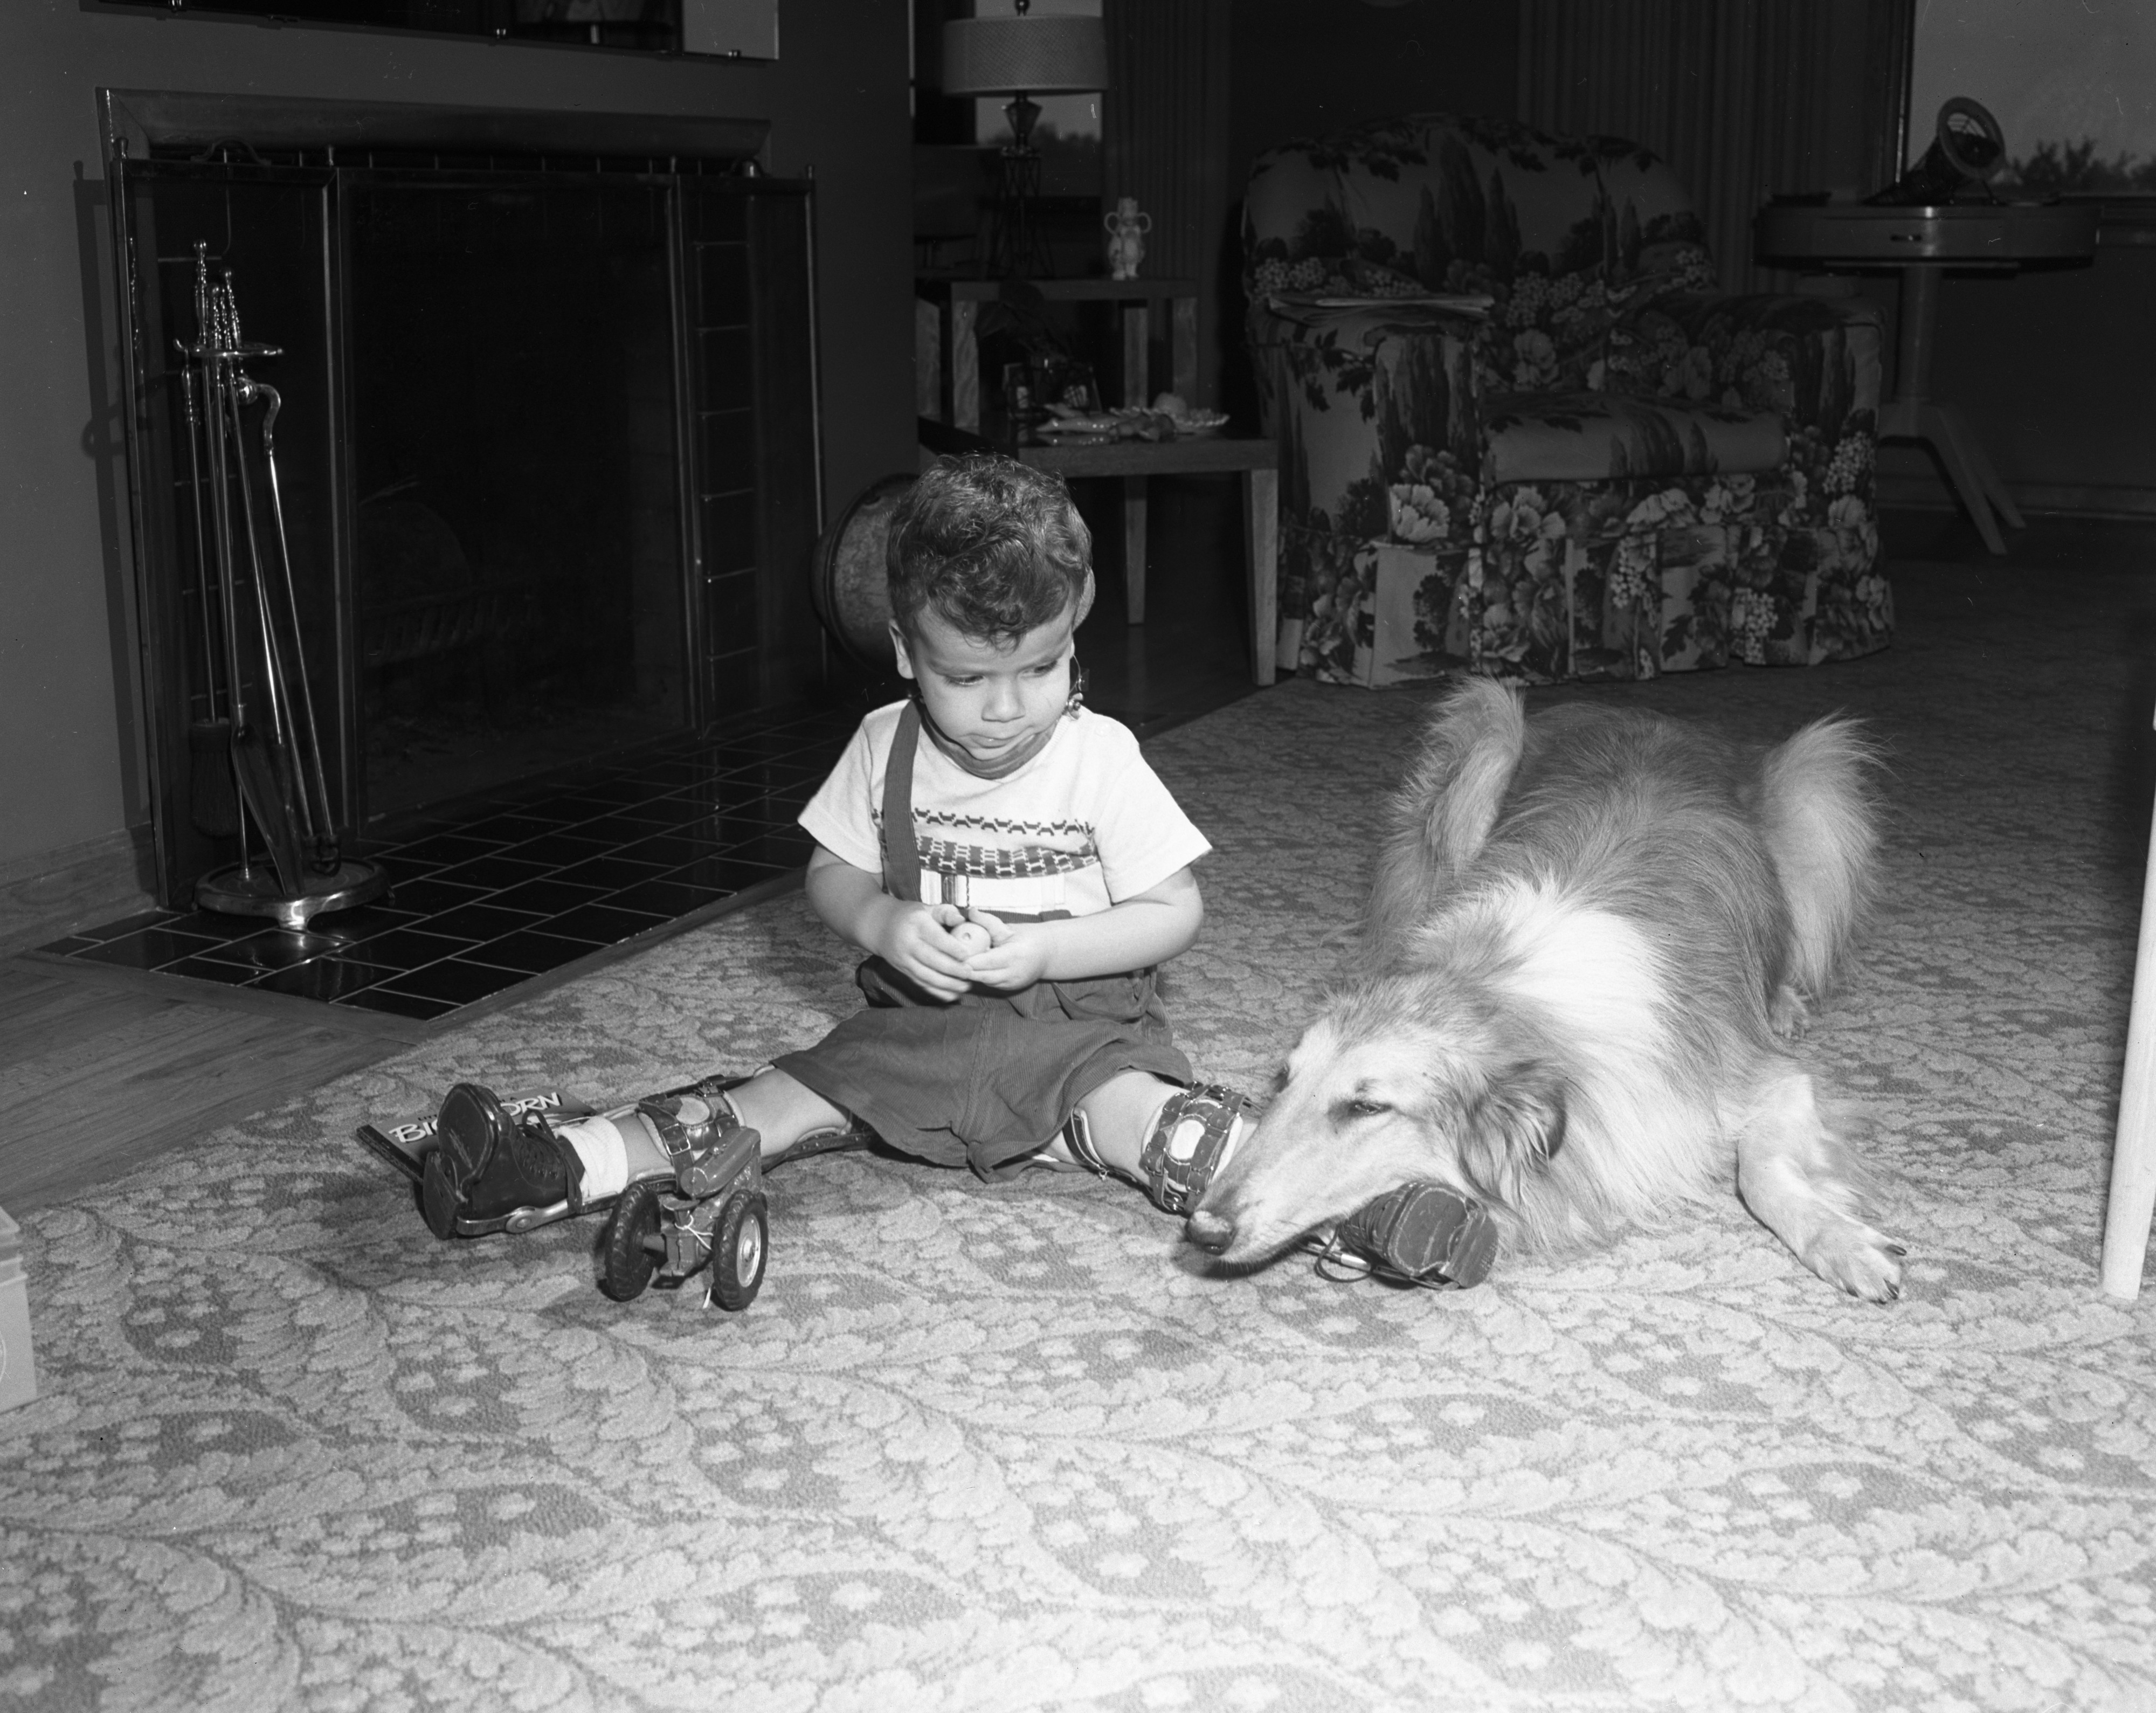 Bobby Snyder with his new friend, September 1954 image